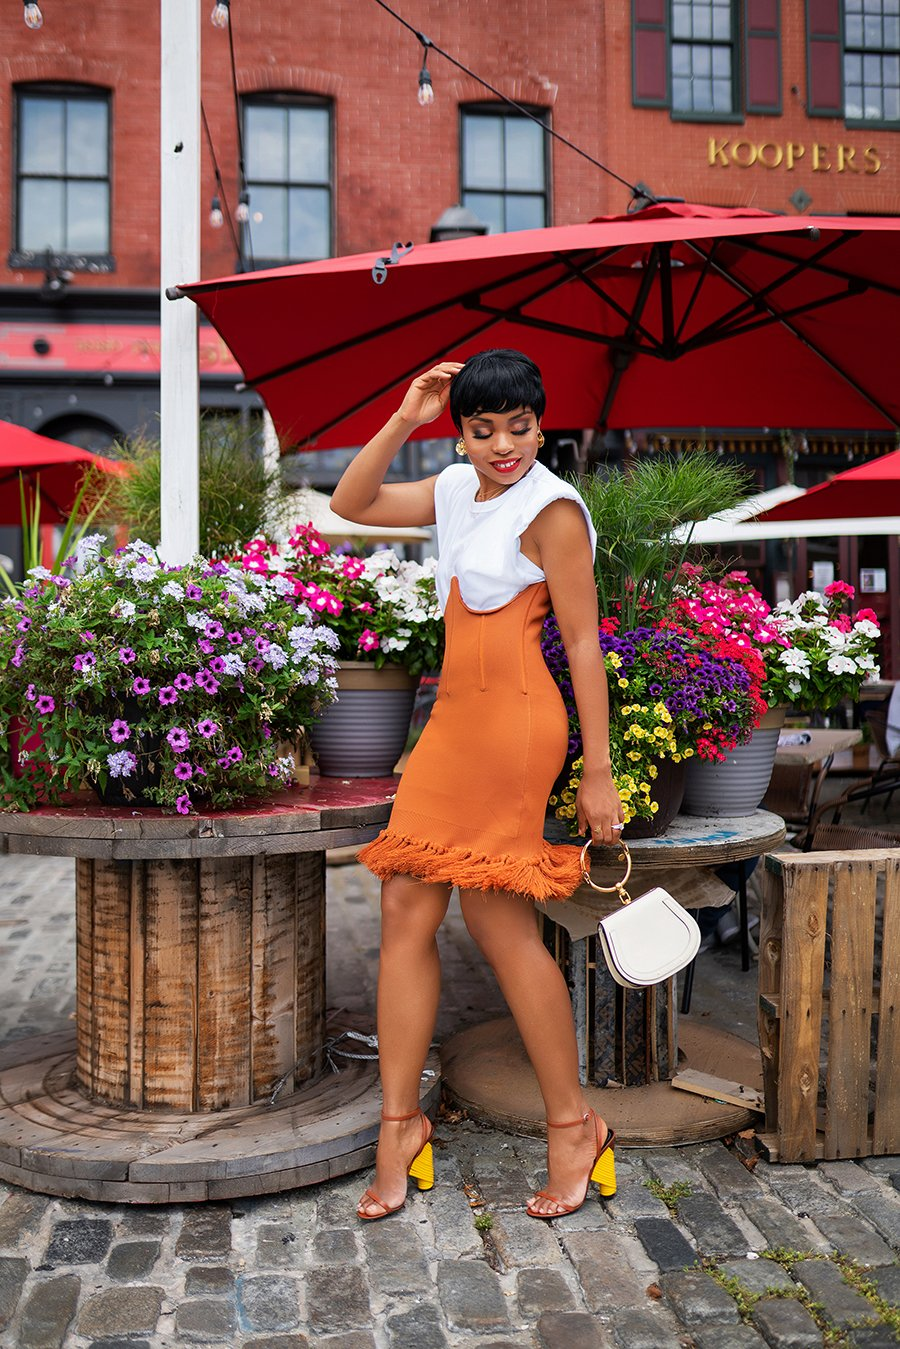 stella-adewunmi-of-jadore-fashion-blog-shares-black-owned-female-brands-to-wear-hanifa-corset-skirt